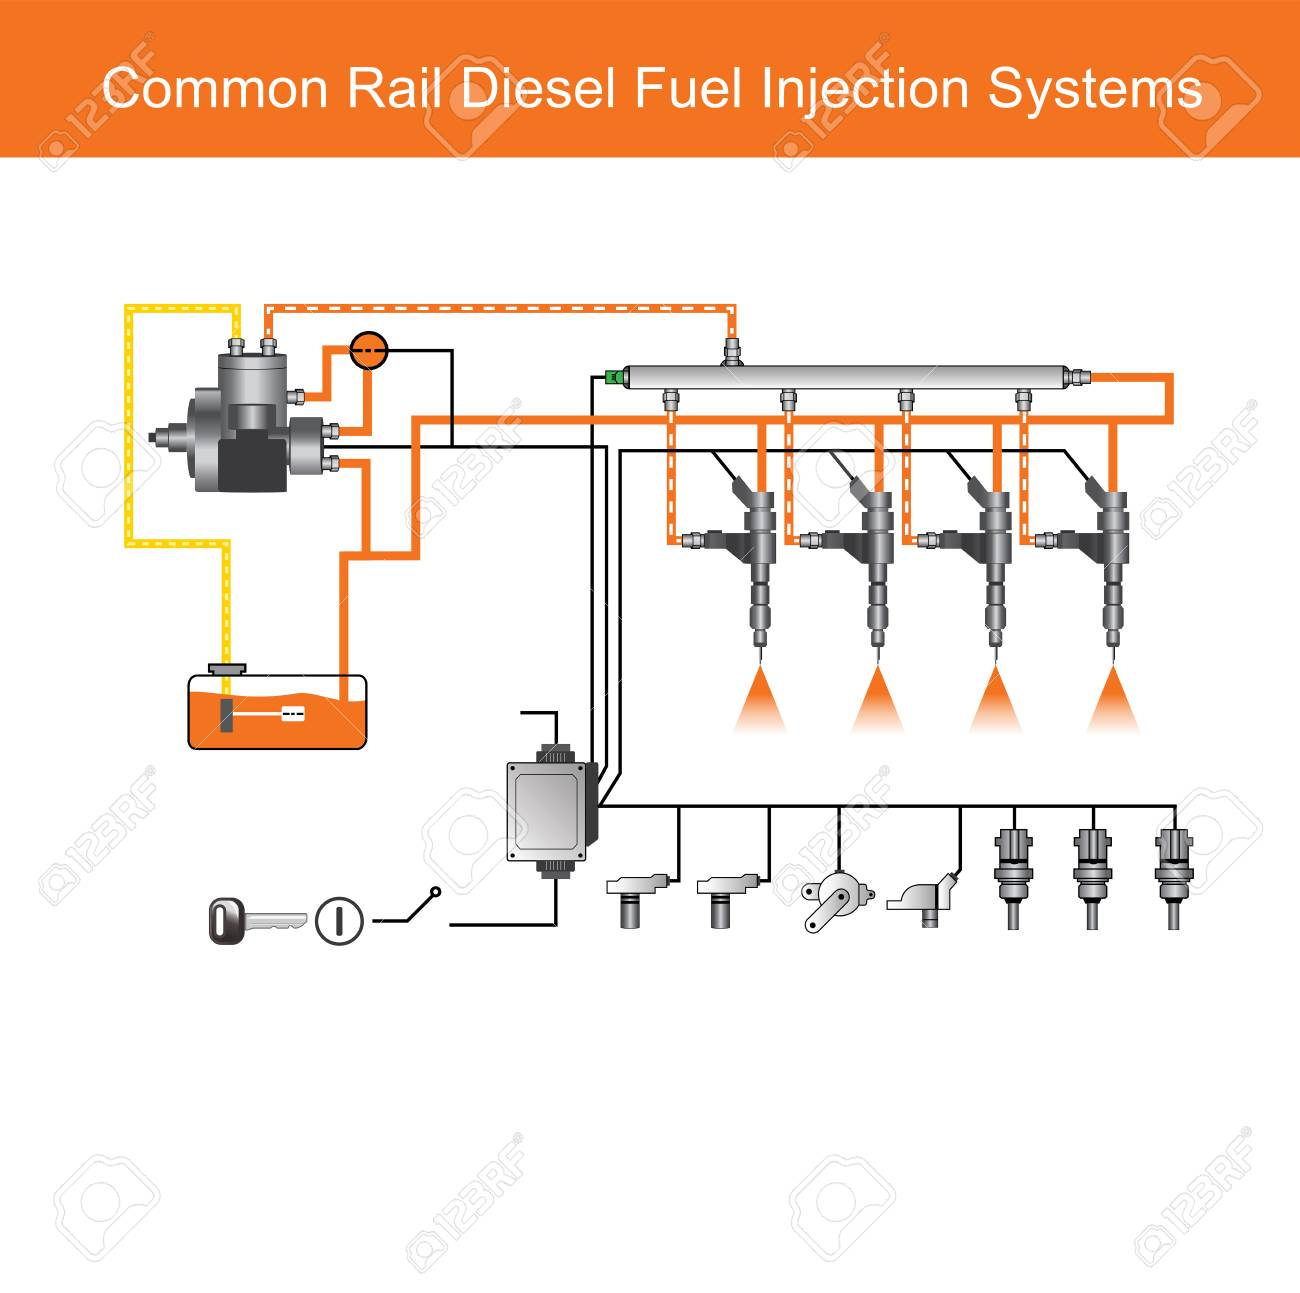 Fuel Injection System Diagram Petrol Fuel Injection System Diagram on harbor freight hoist repair, harbor freight hoist system, harbor freight hoist motor,